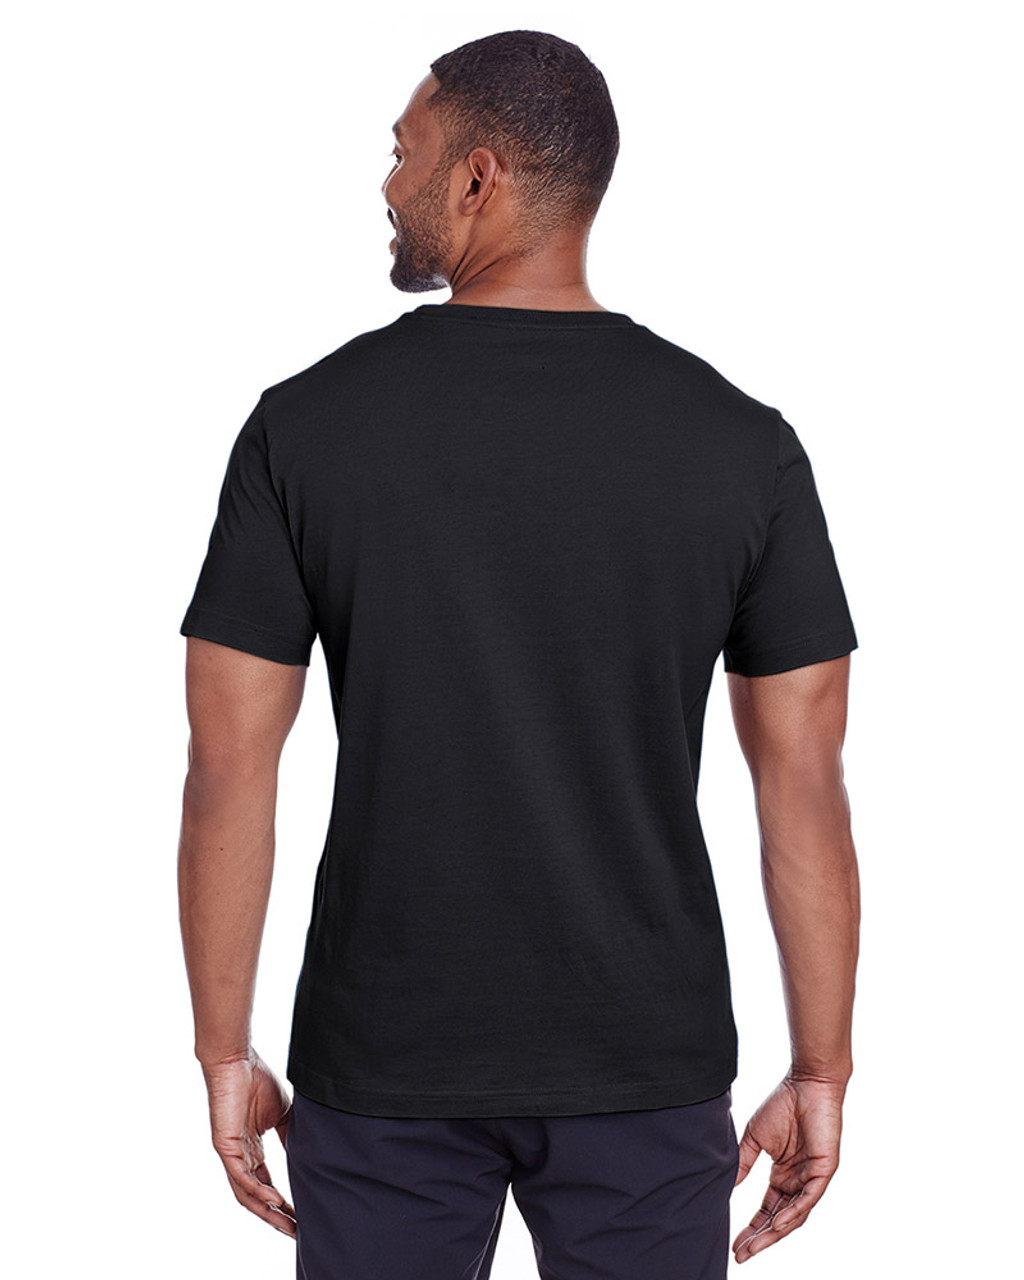 Puma Black/Quiet Shade - back, 582006 Puma Sport Essential Adult Logo T-Shirt | BlankClothing